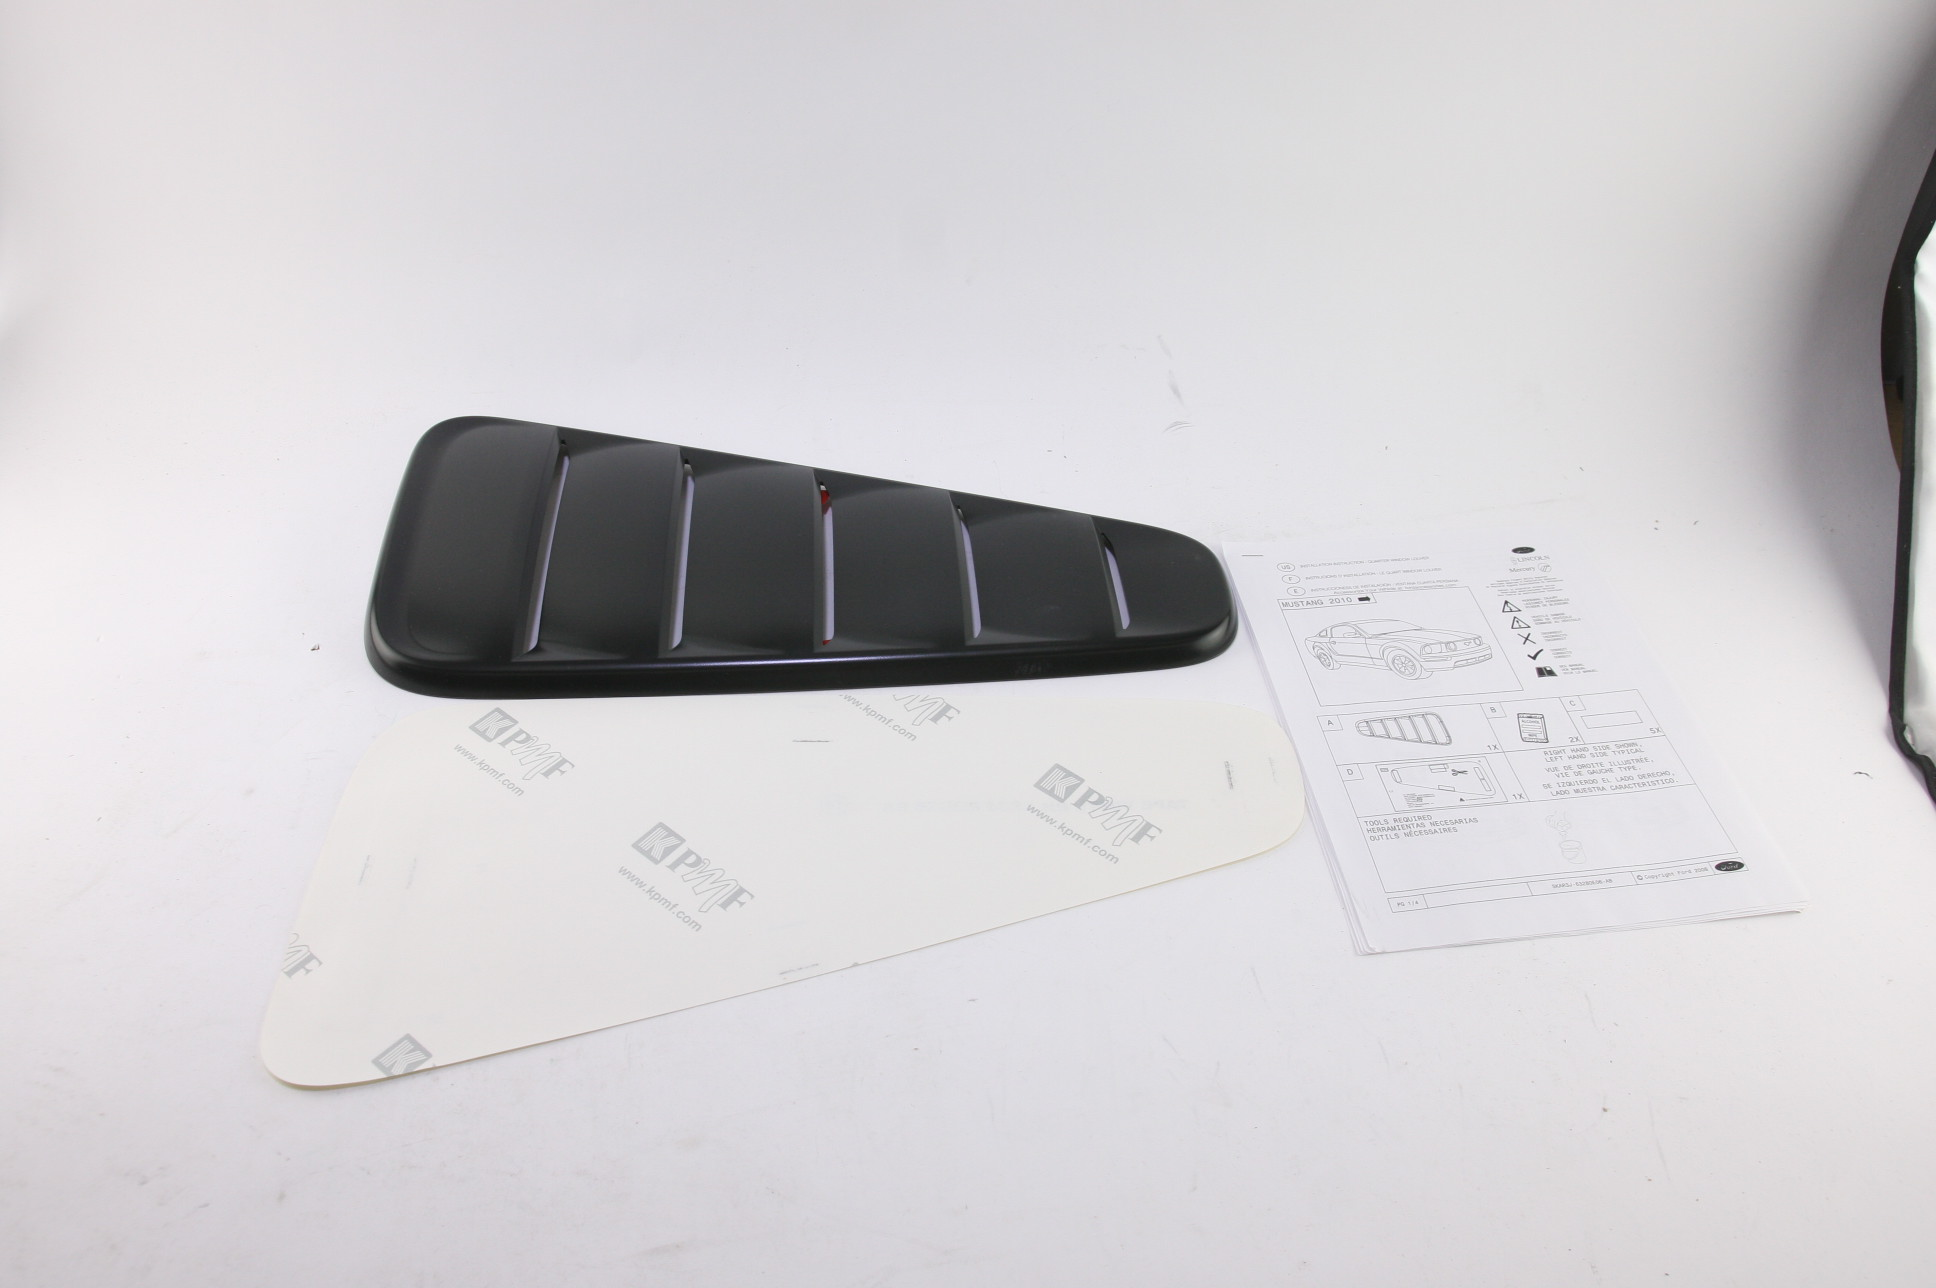 *** New OEM AR3Z63280B10AA 10-14 Mustang Louver Vent Right Primer Free Shipping - image 3